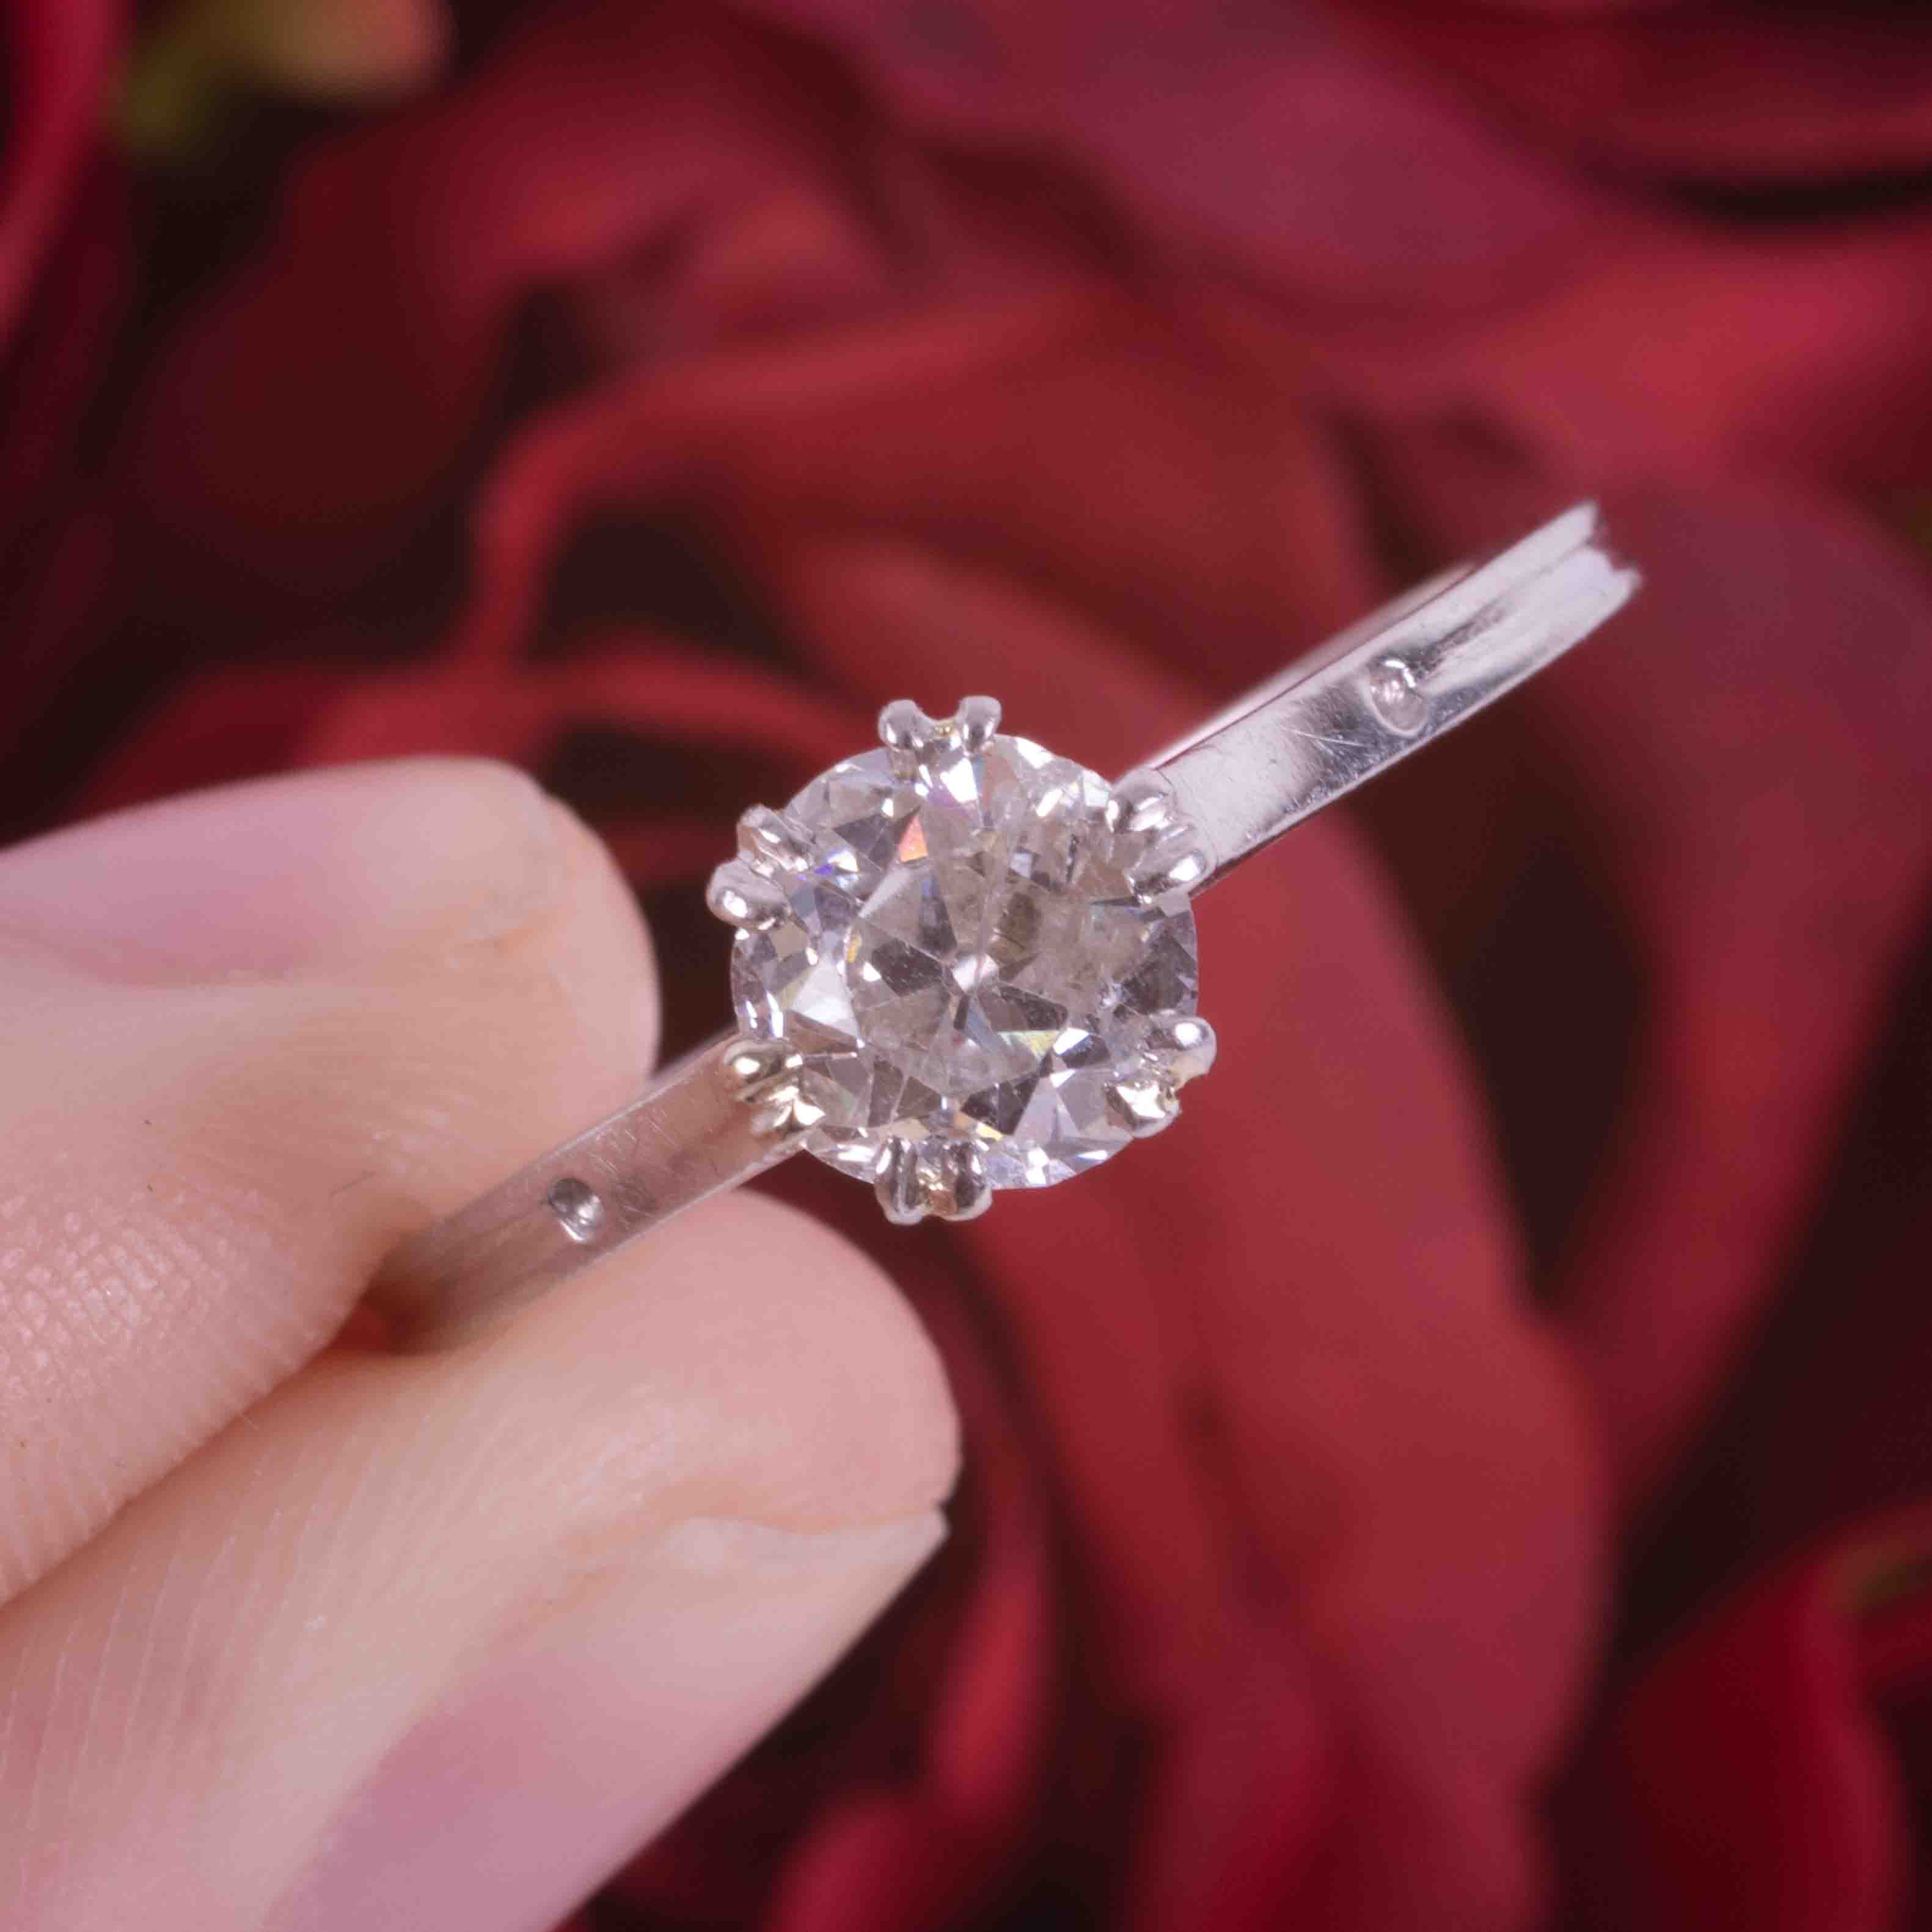 A platinum single stone ring with set with approx. 0.81 carats of old round cut diamond, colour H- - Image 4 of 4